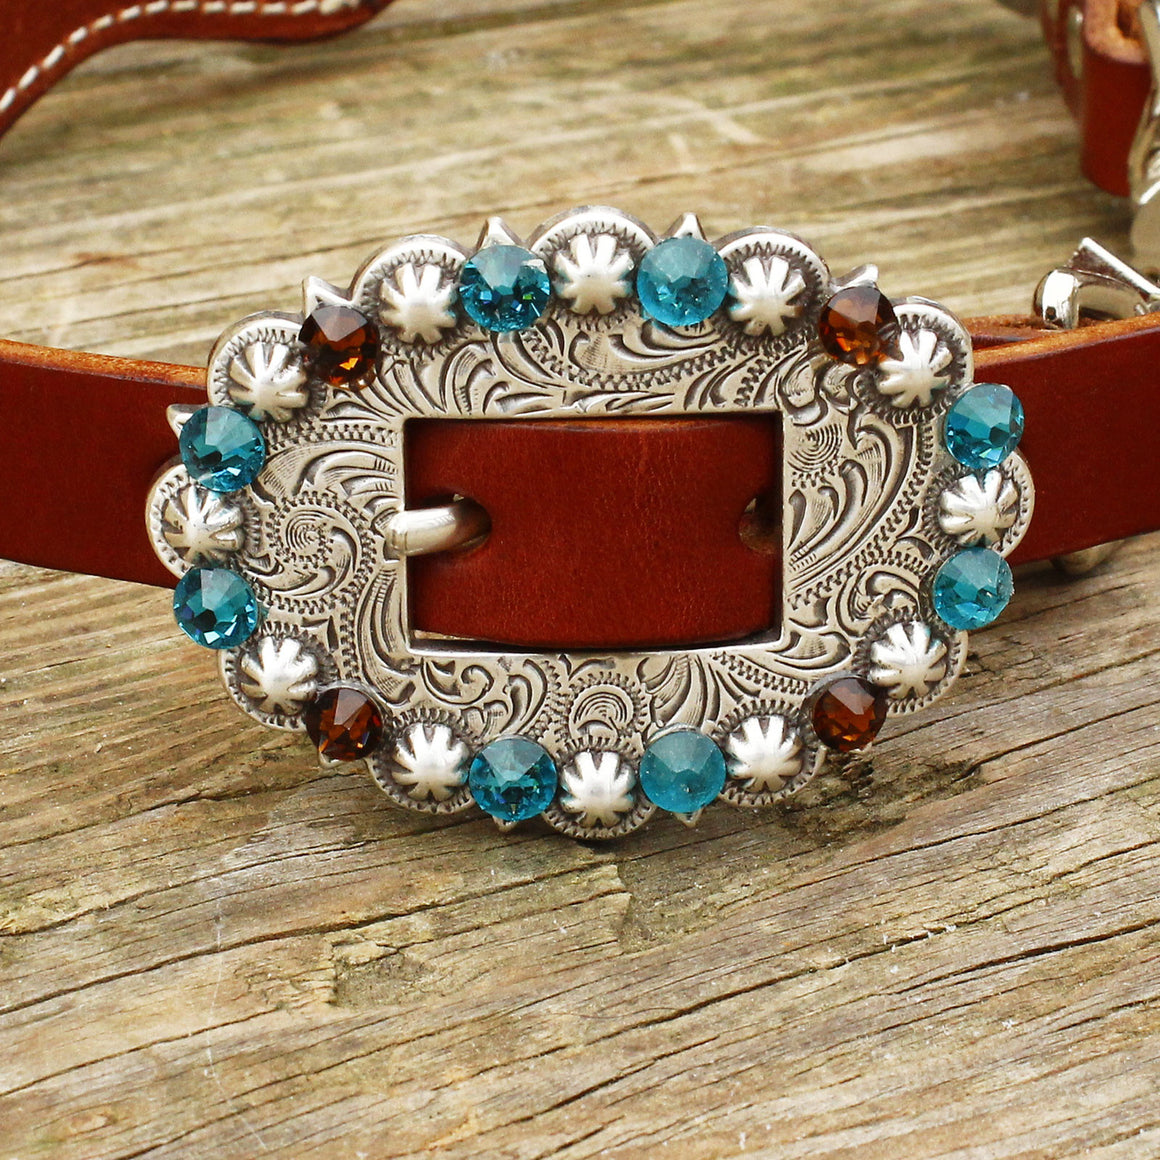 Teal & Brown Gator/Chestnut Leather Wither Strap w/Teal, Topaz & Lt. Topaz Crystal Rhinestone Concho